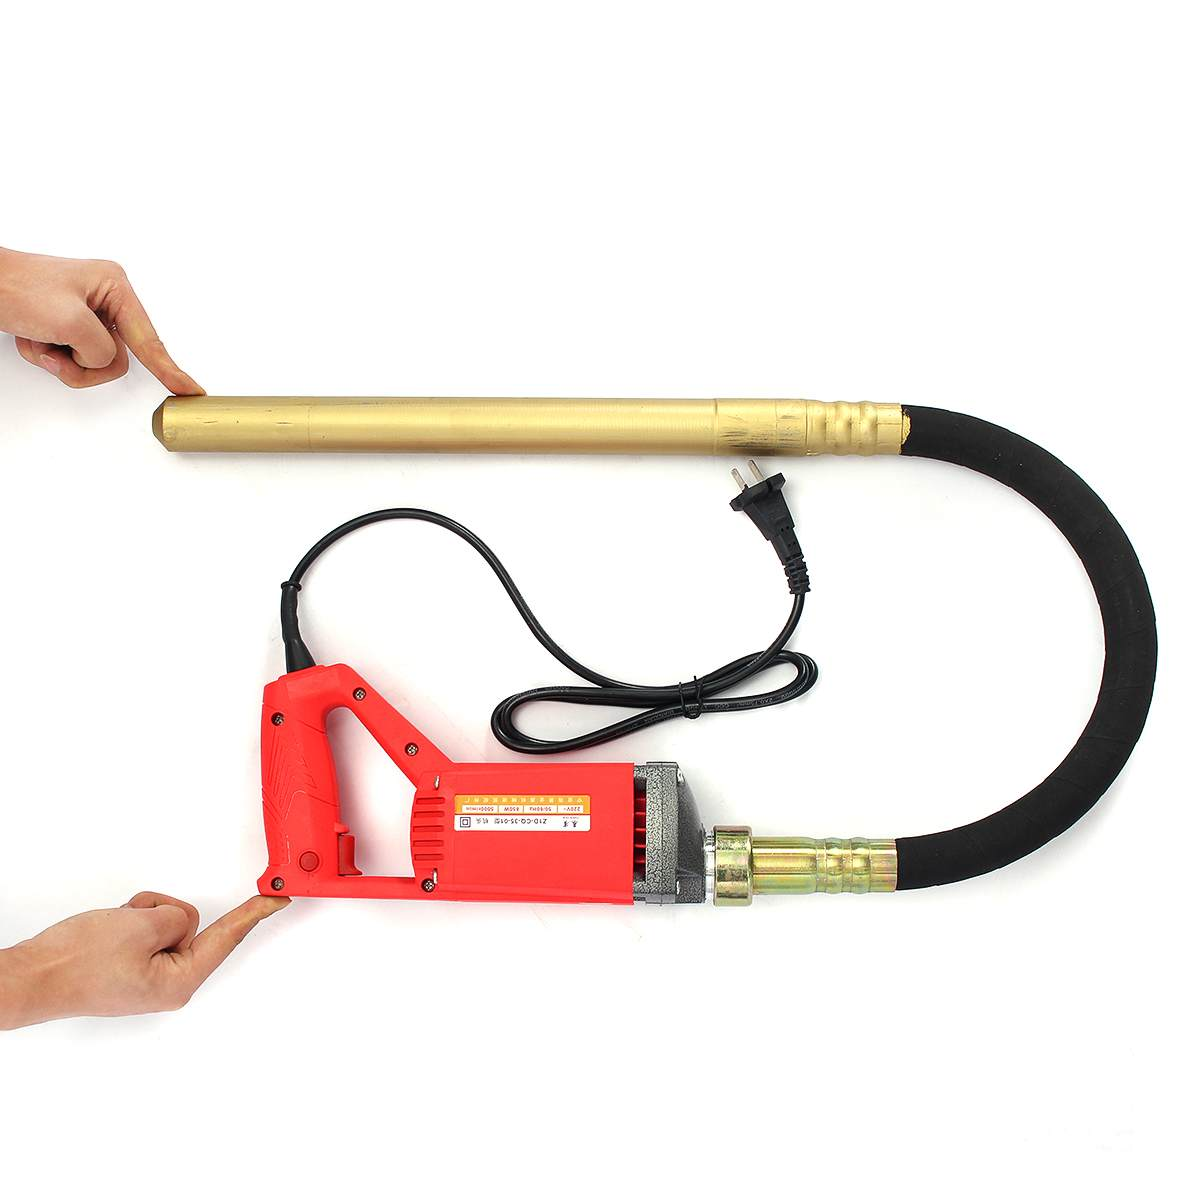 Electrical Concrete Vibrator 1560W/1200W/800W 220V With Motor Construction Tools